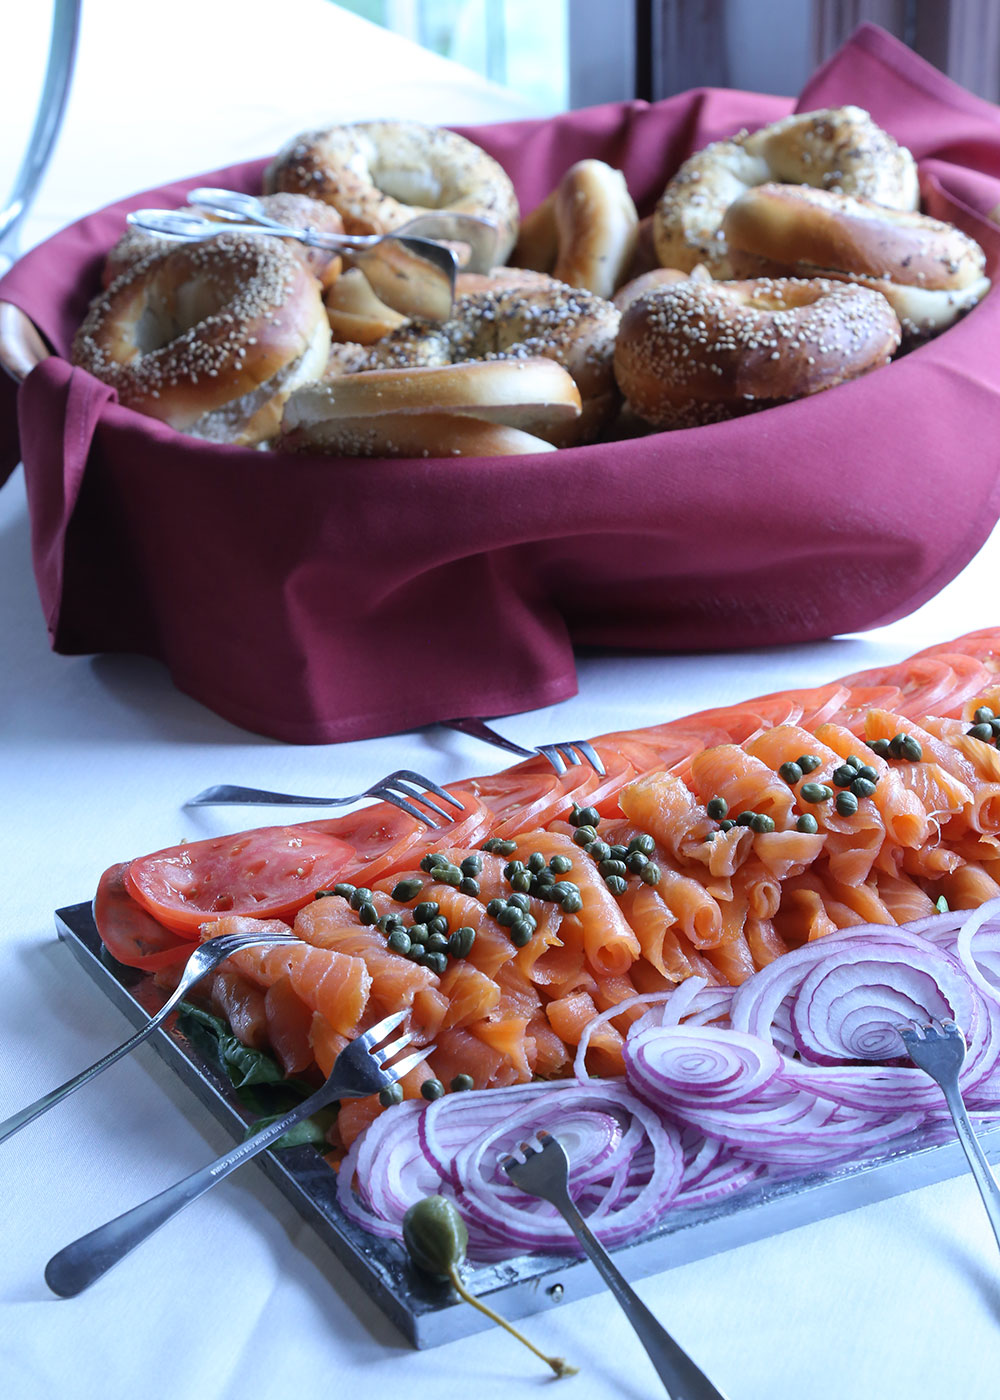 Picture of smoked salmon and bagels.